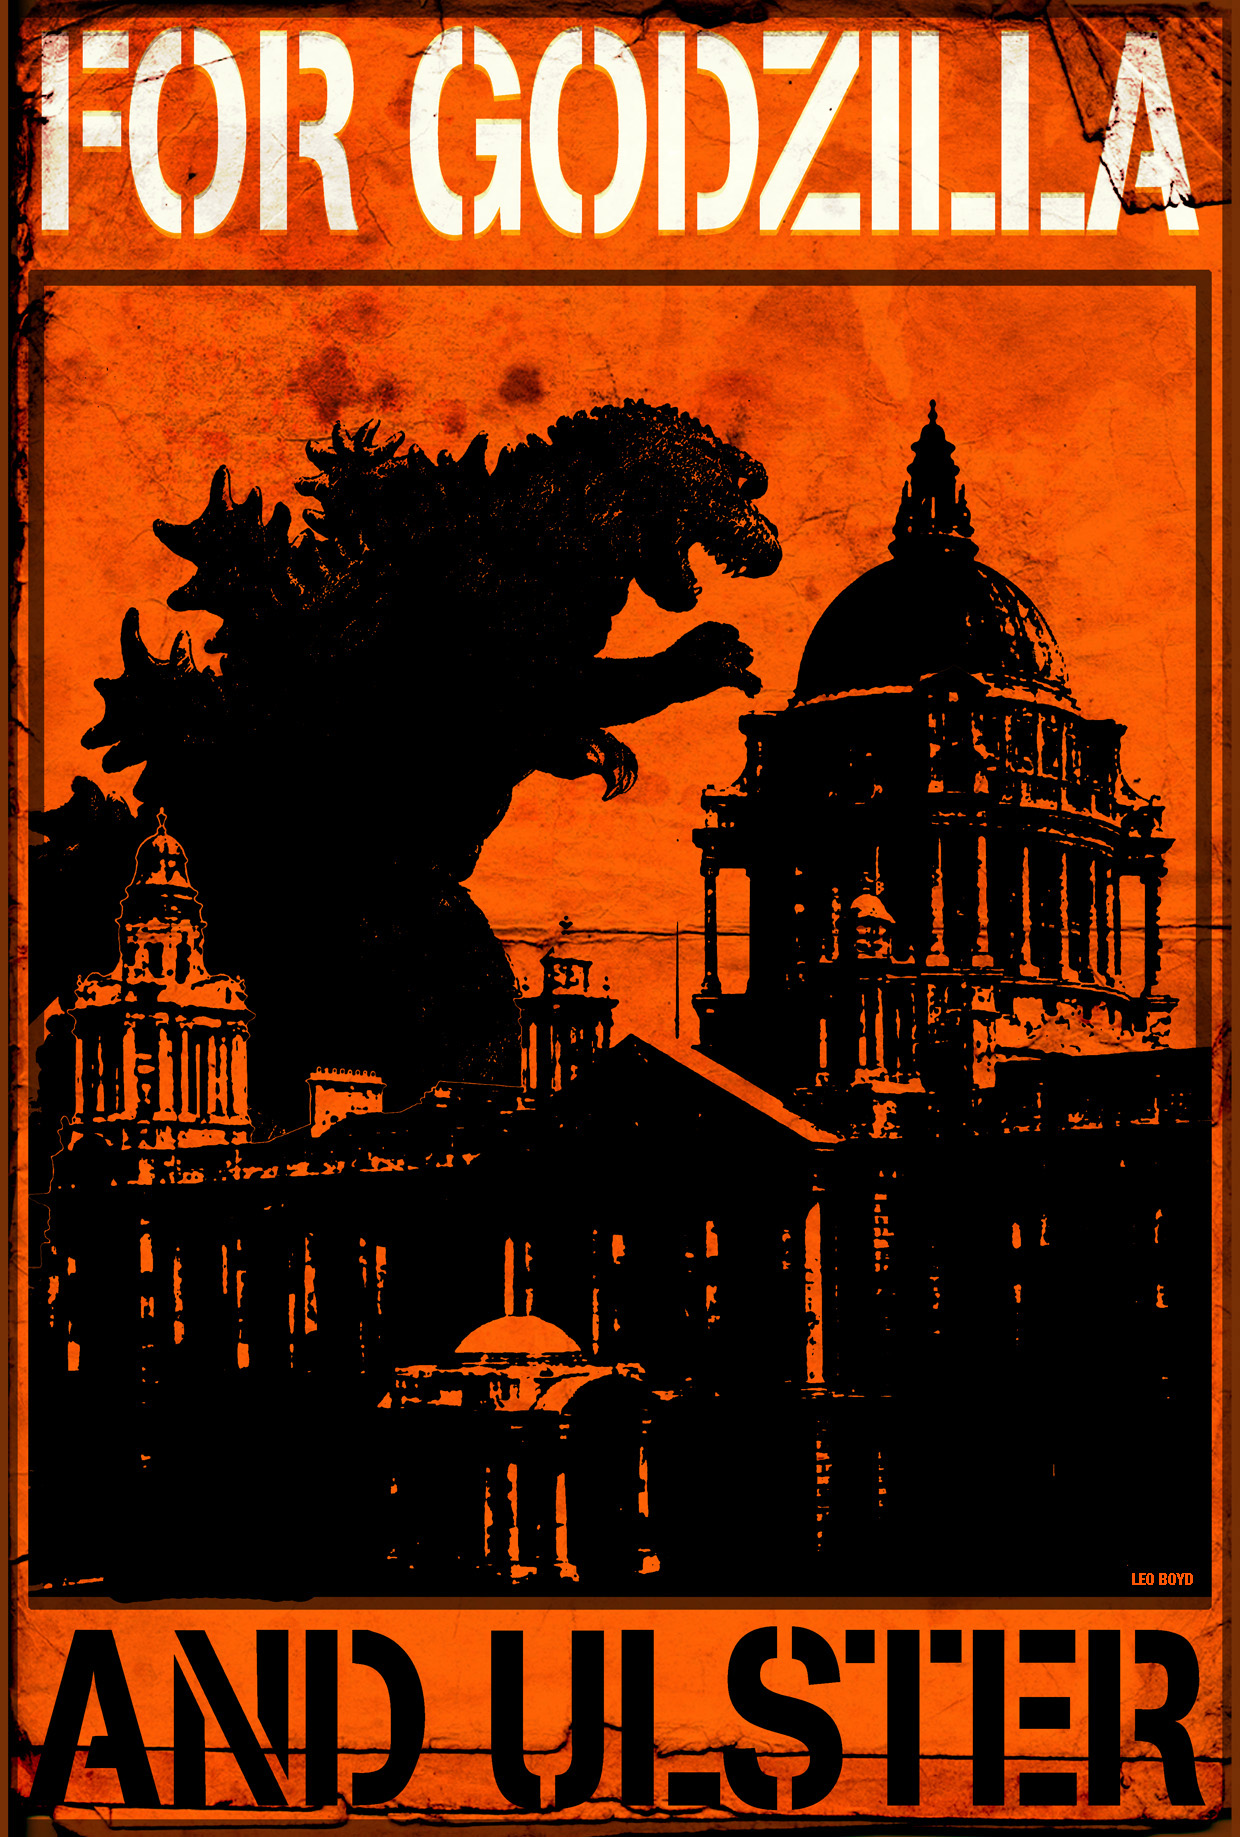 for godzilla and ulster